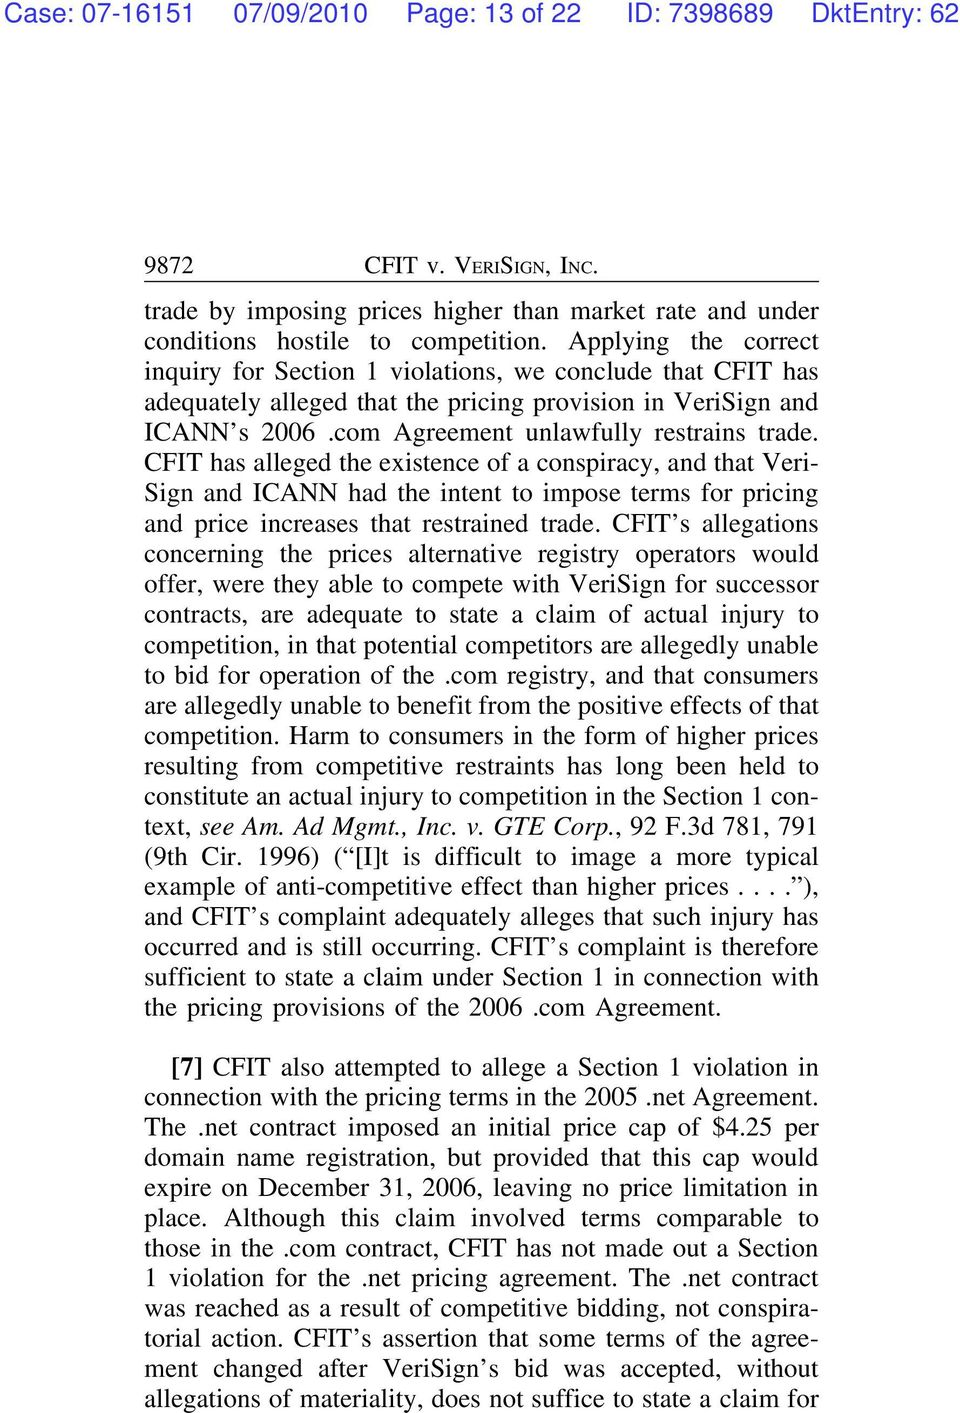 CFIT has alleged the existence of a conspiracy, and that Veri- Sign and ICANN had the intent to impose terms for pricing and price increases that restrained trade.